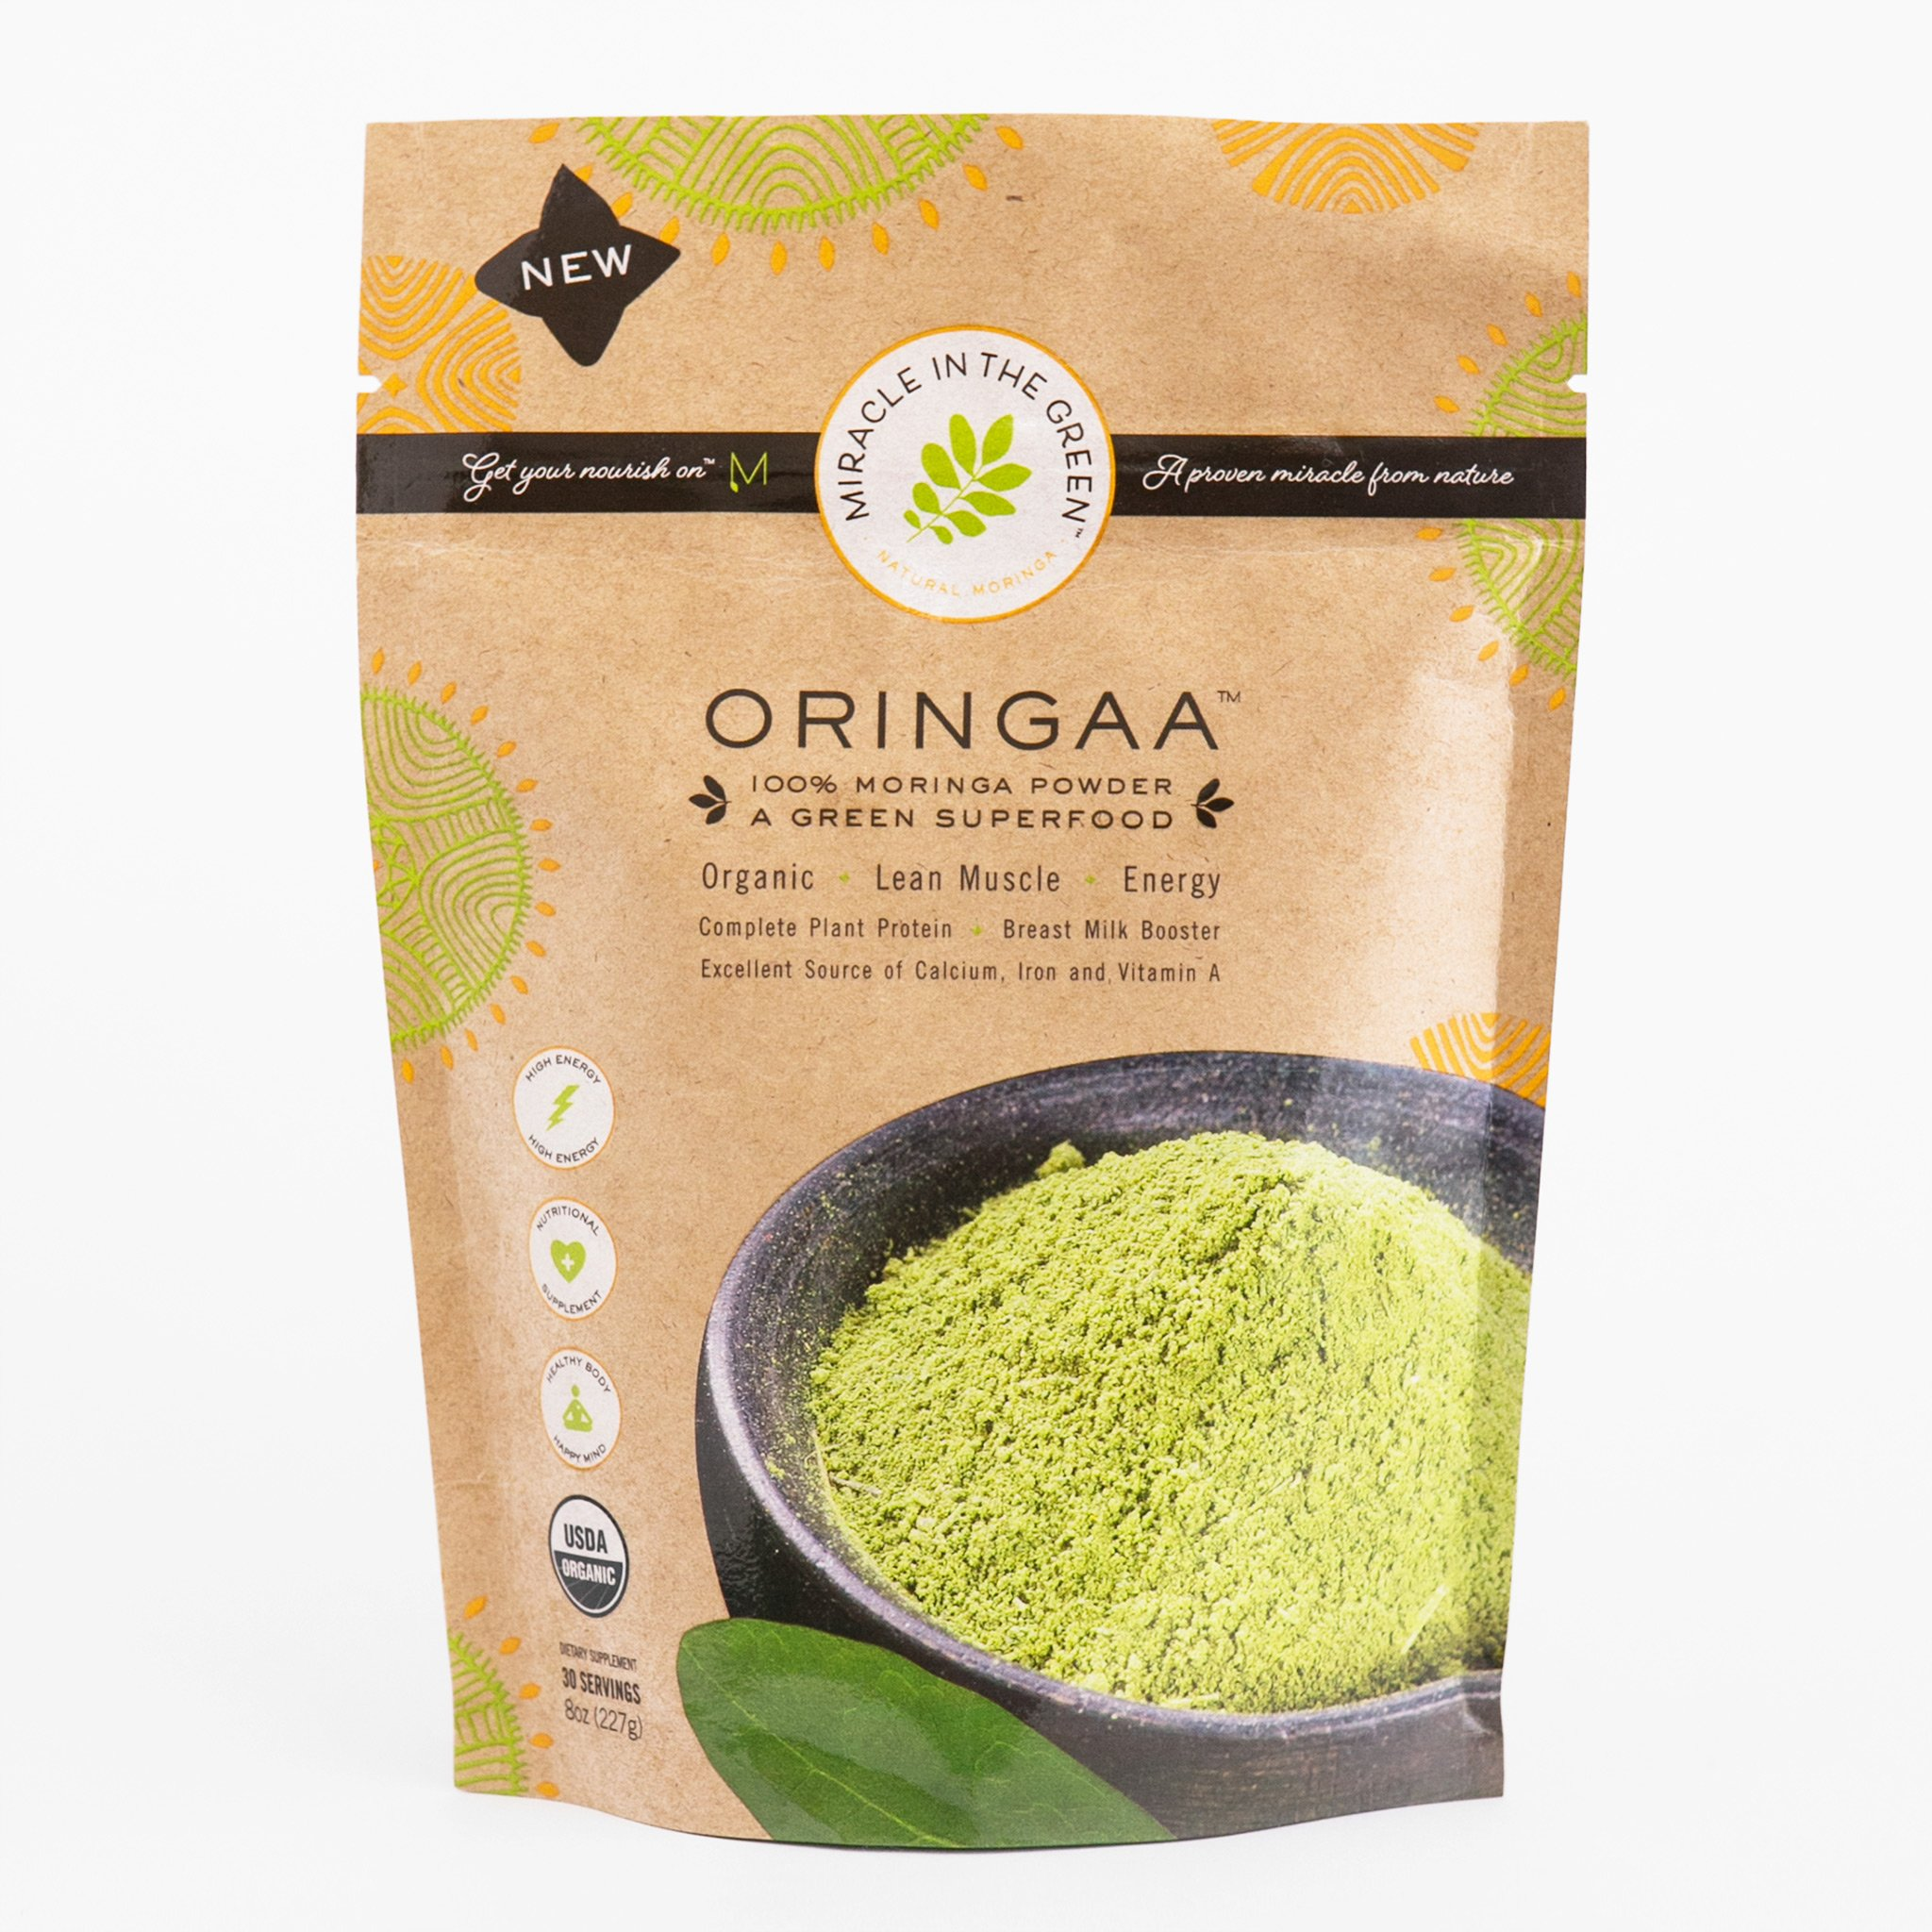 Moringa Powder - Anti-Aging - Gluten-Free - | by Miracle in The Green. USDA Certified Organic. Raw Superfood and Multi-Vitamin. for Green Juice, Smoothies and Food. Gives Energy. 8 oz